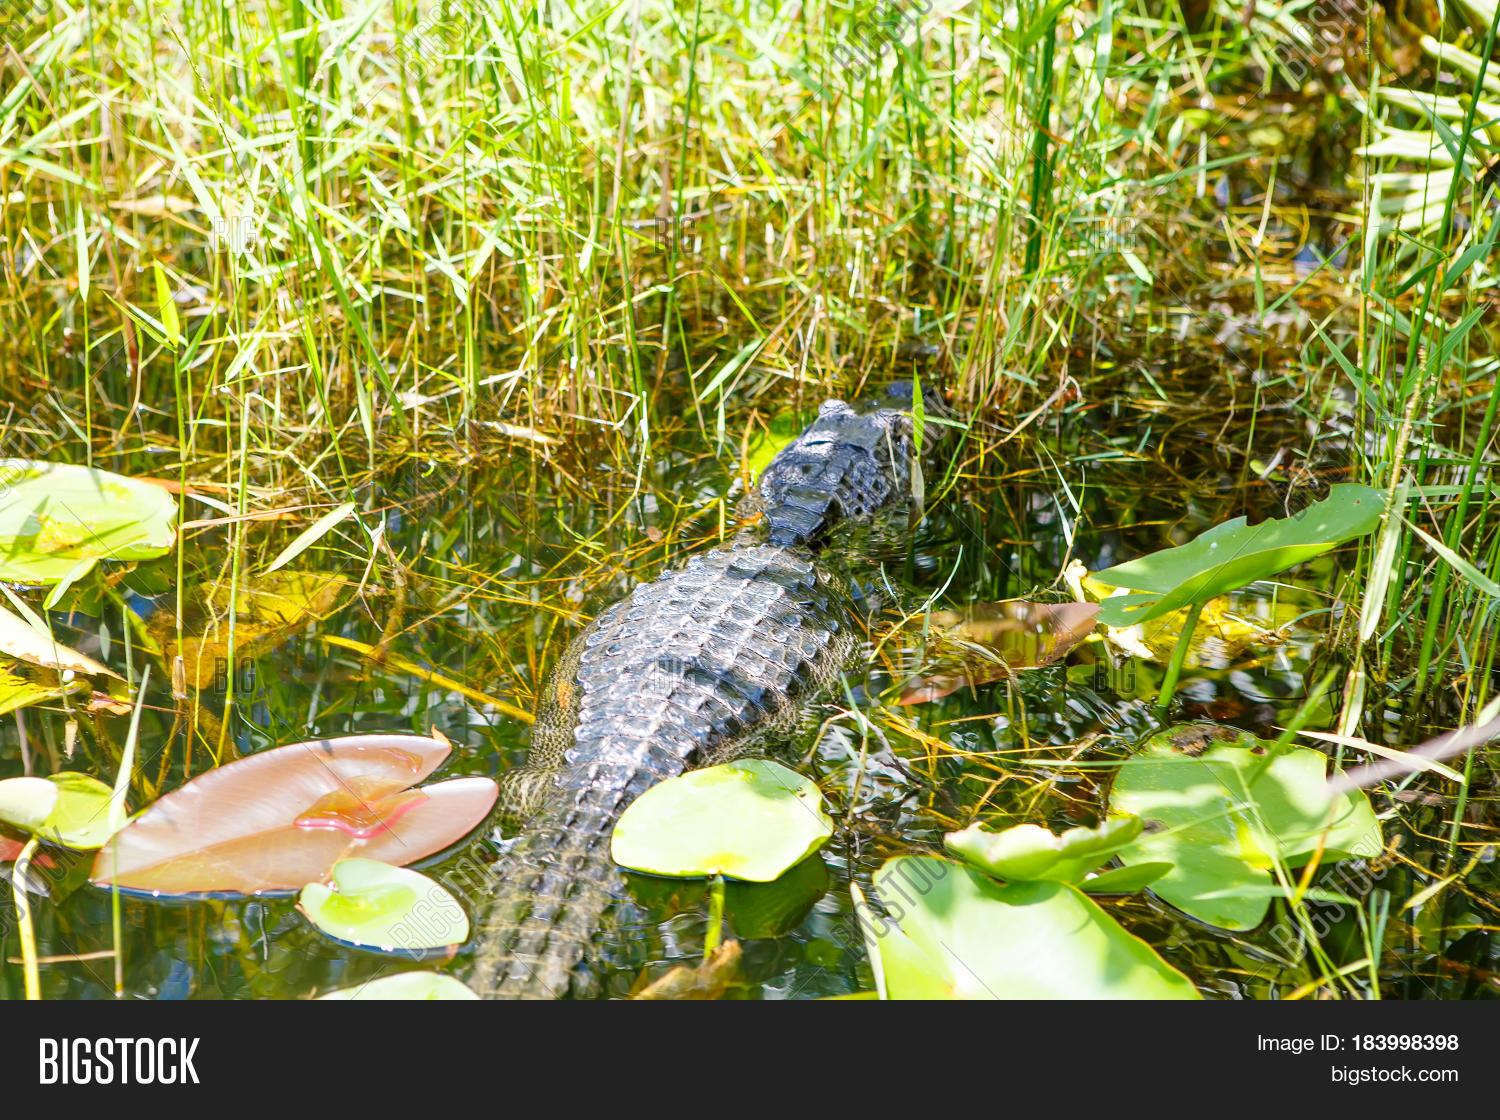 the wetland ecosystem of the american everglades Wetland tourism: usa – the everglades national park the greater everglades ecosystem designated on the north american continent it.